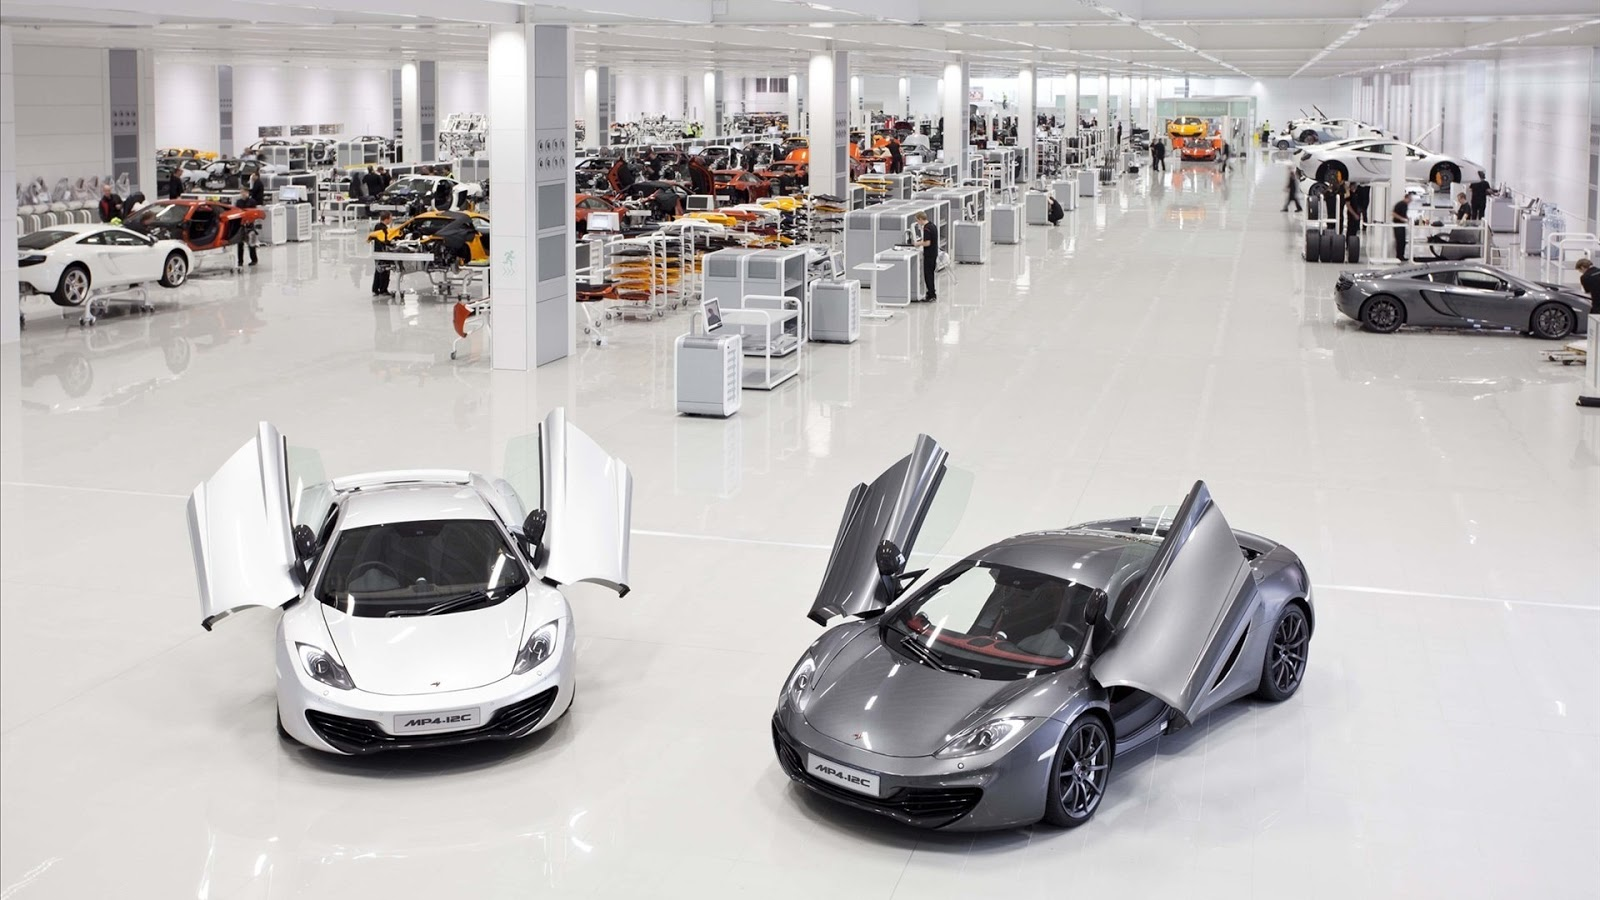 Hd Cars Desktop Wallpapers Collectionsthe New Life For The Next